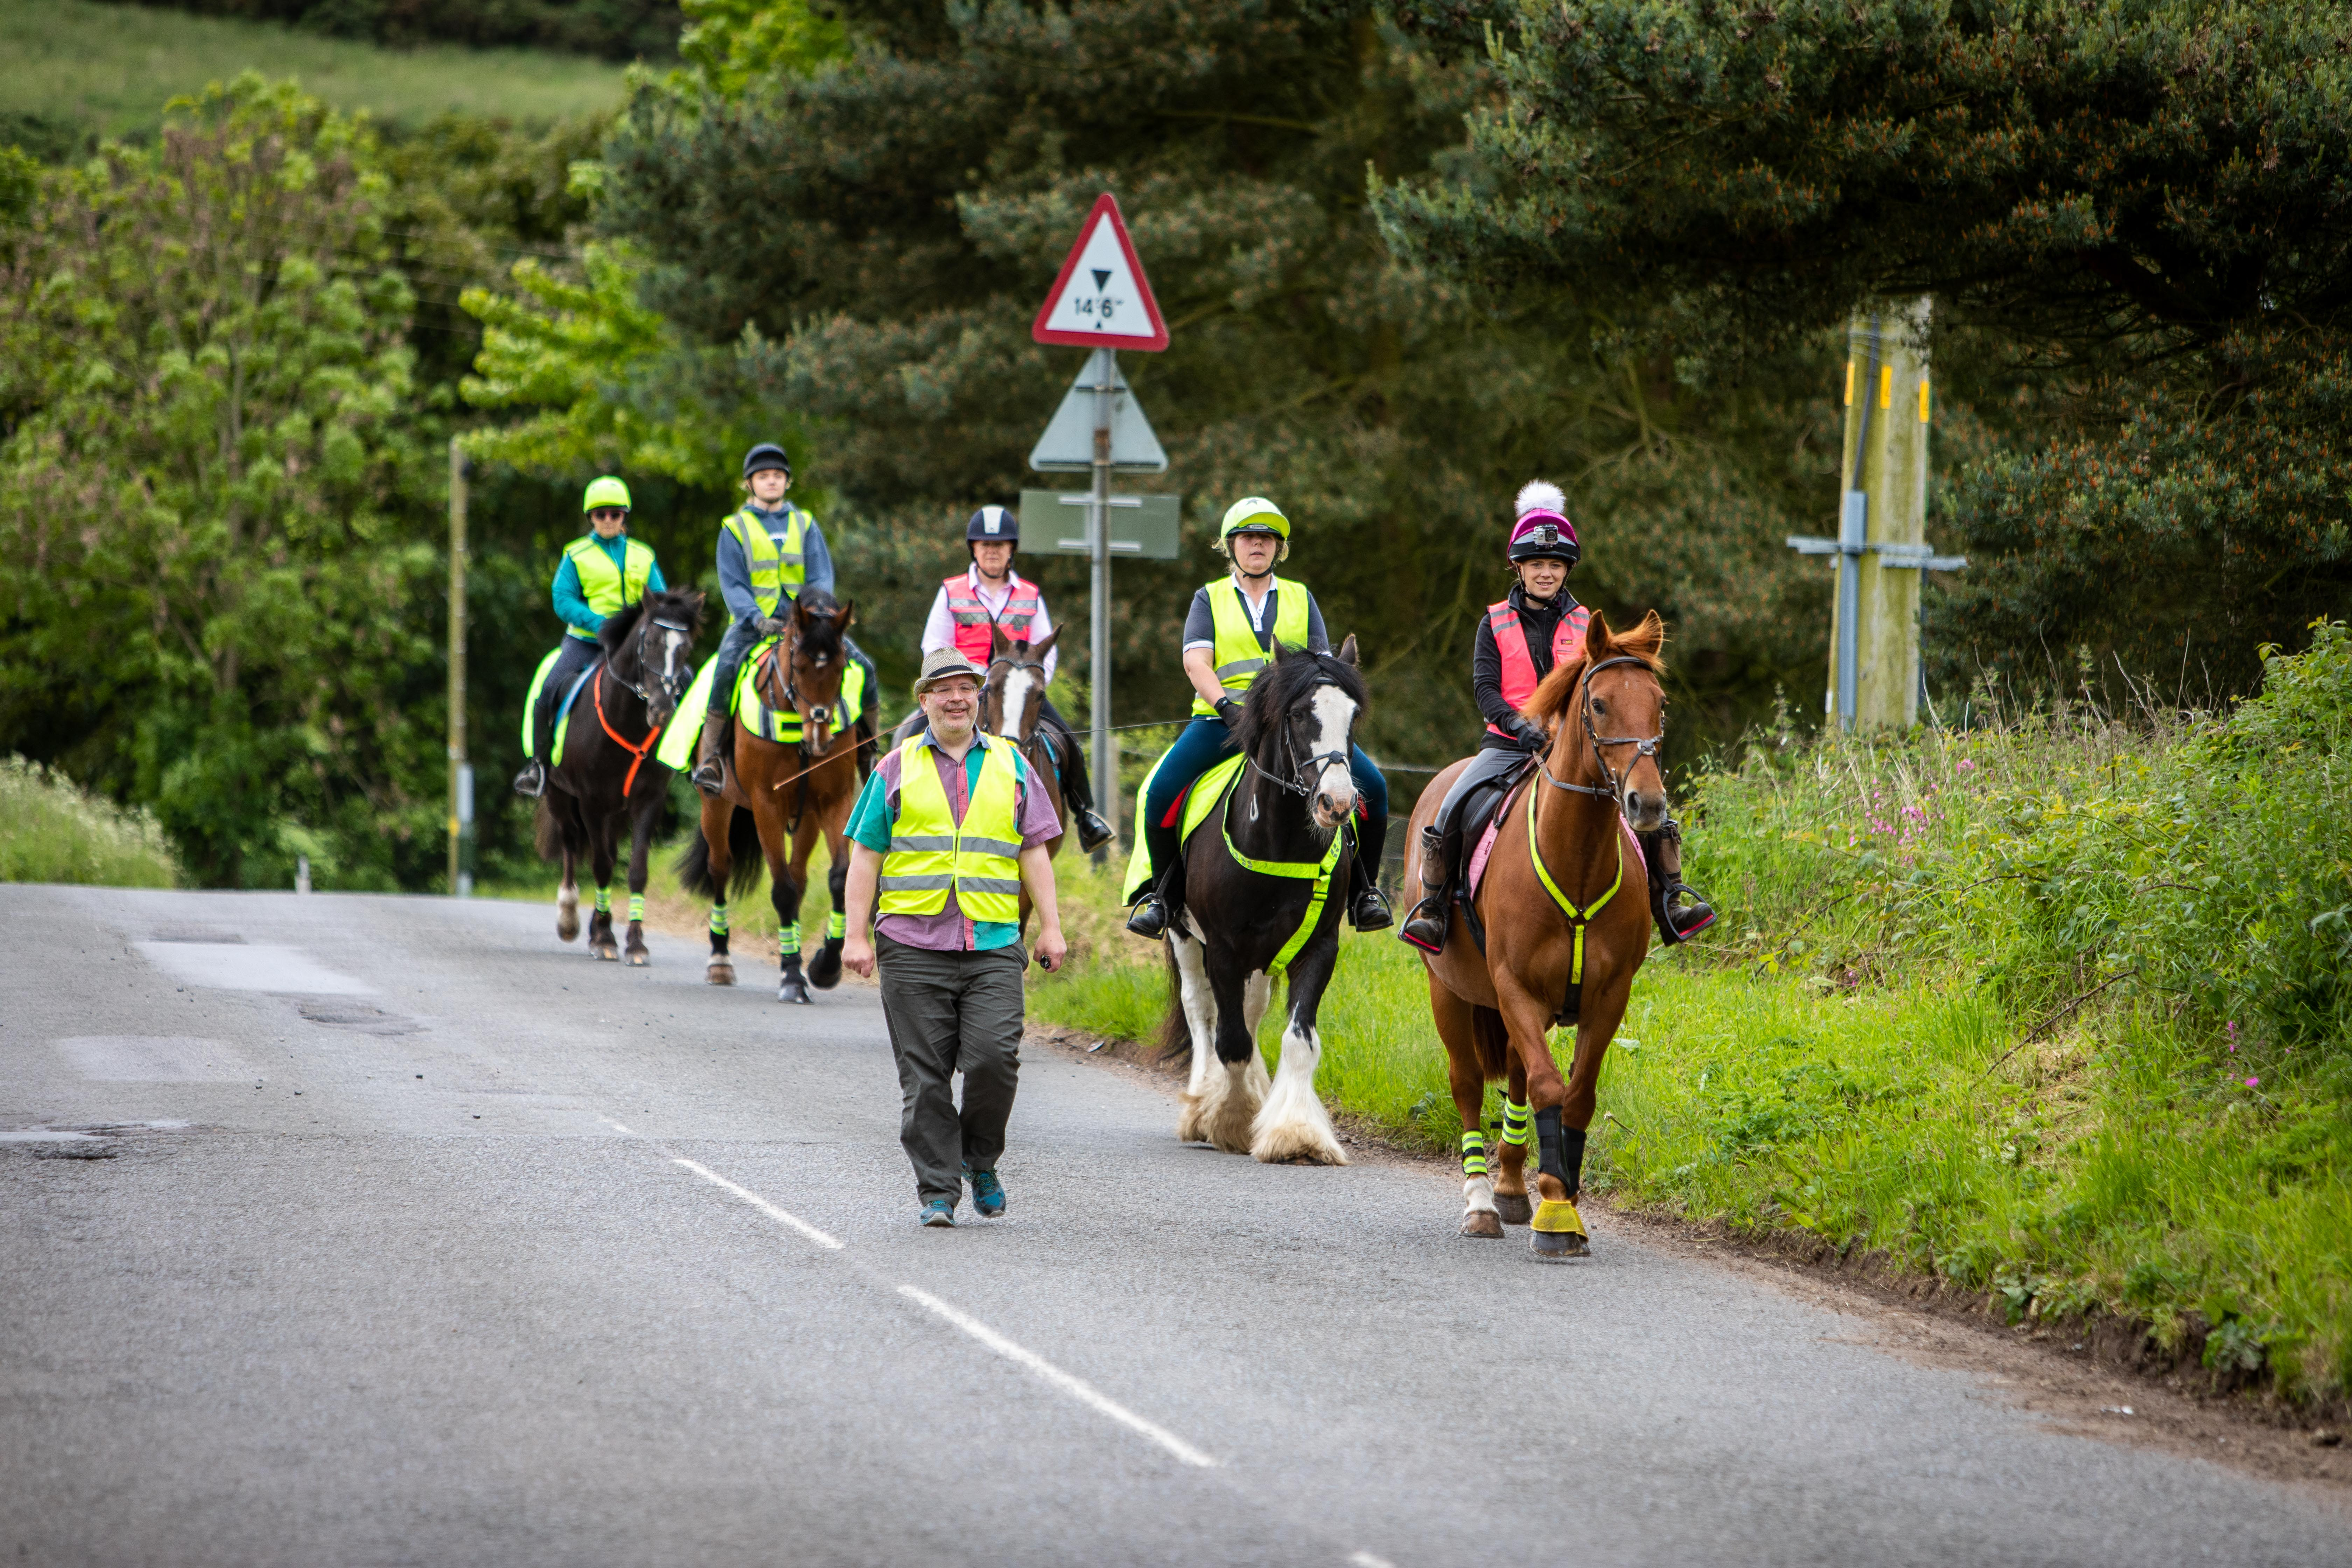 Newton Farm Stables manager Caroline Andrew and Councillor Jonny Tepp leading horses on a country road.